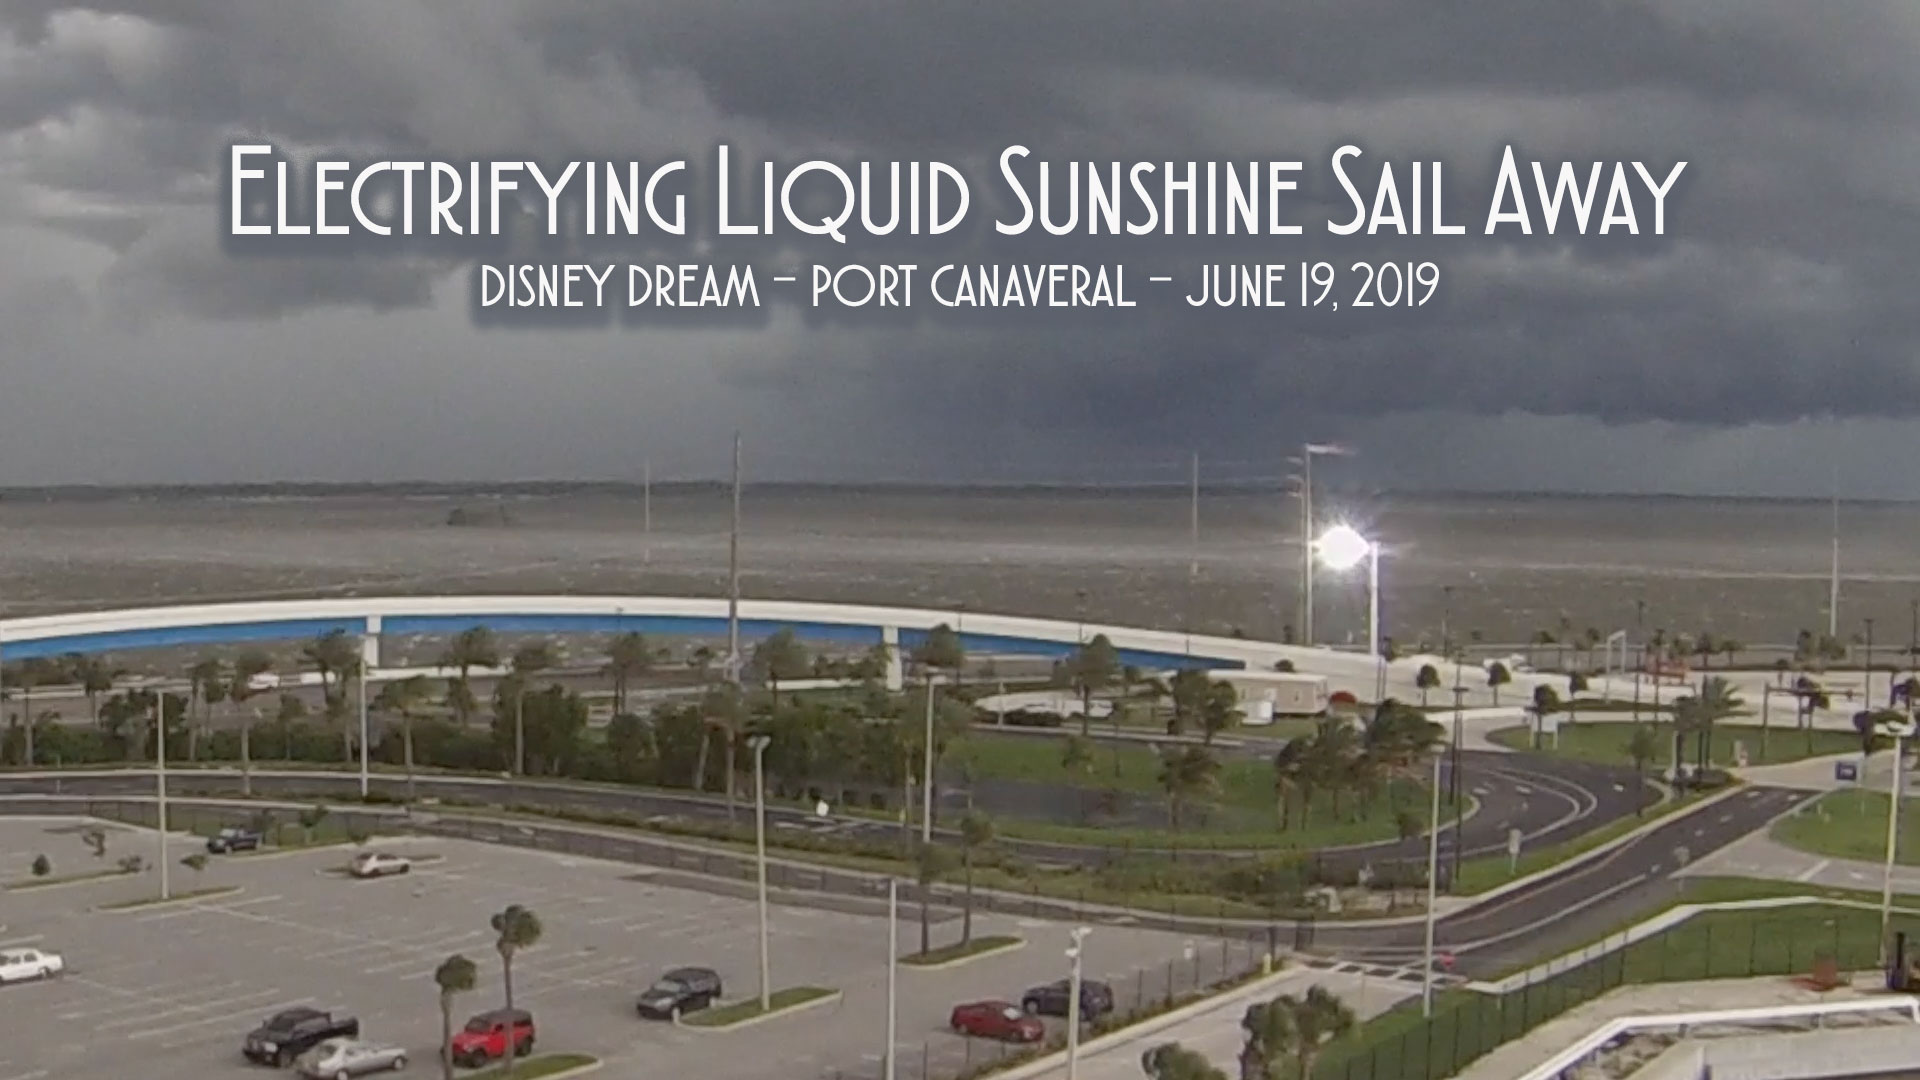 Electrifying Liquid Sunshine Disney Dream Sail Away From Port Canaveral